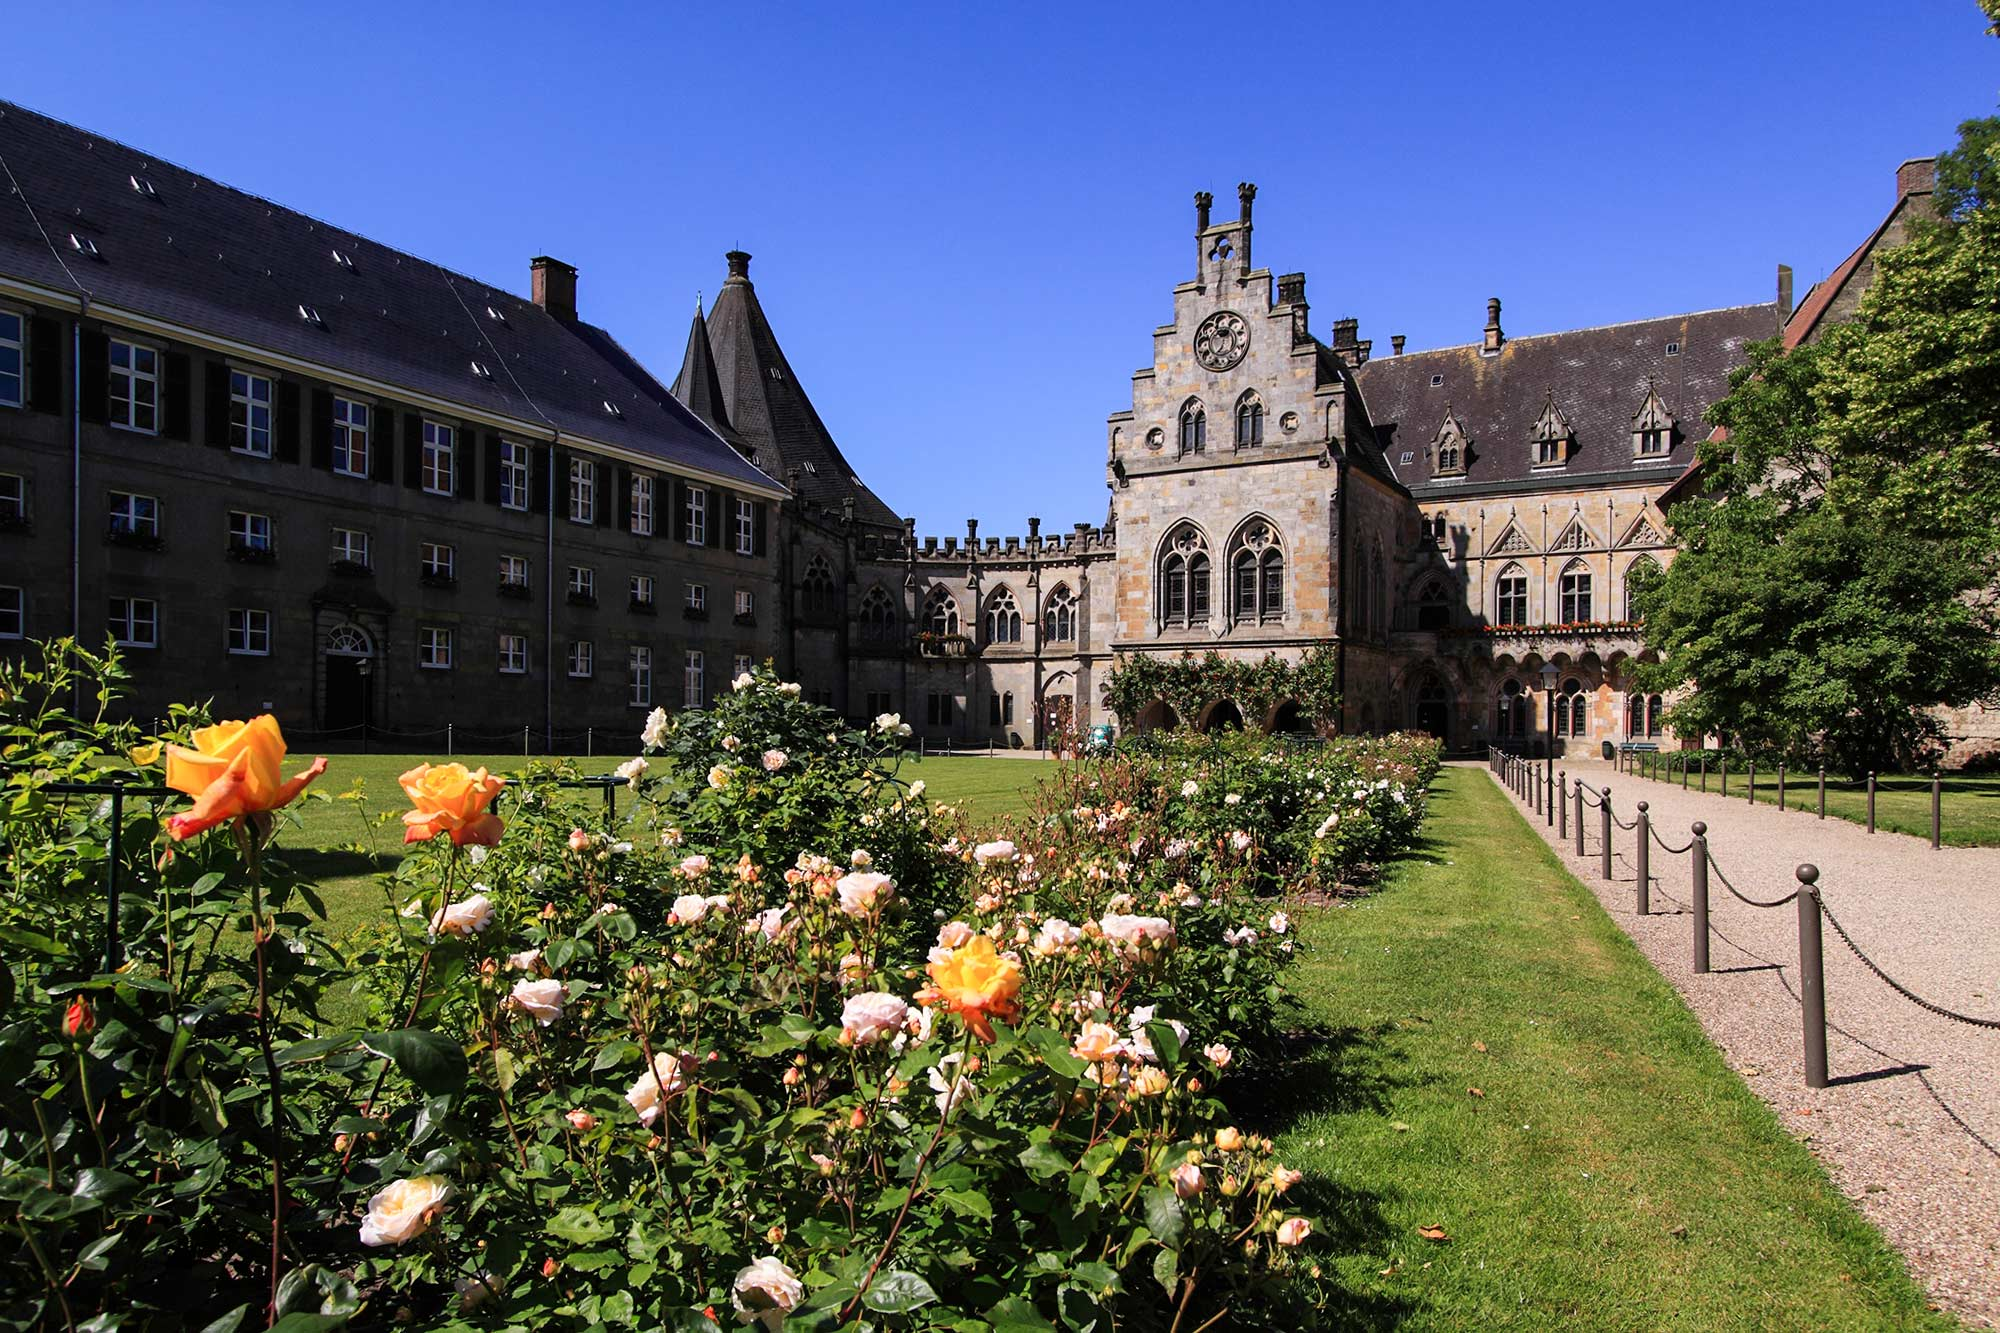 Binnenplein kasteel Bentheim © Thomas Wallmeyer